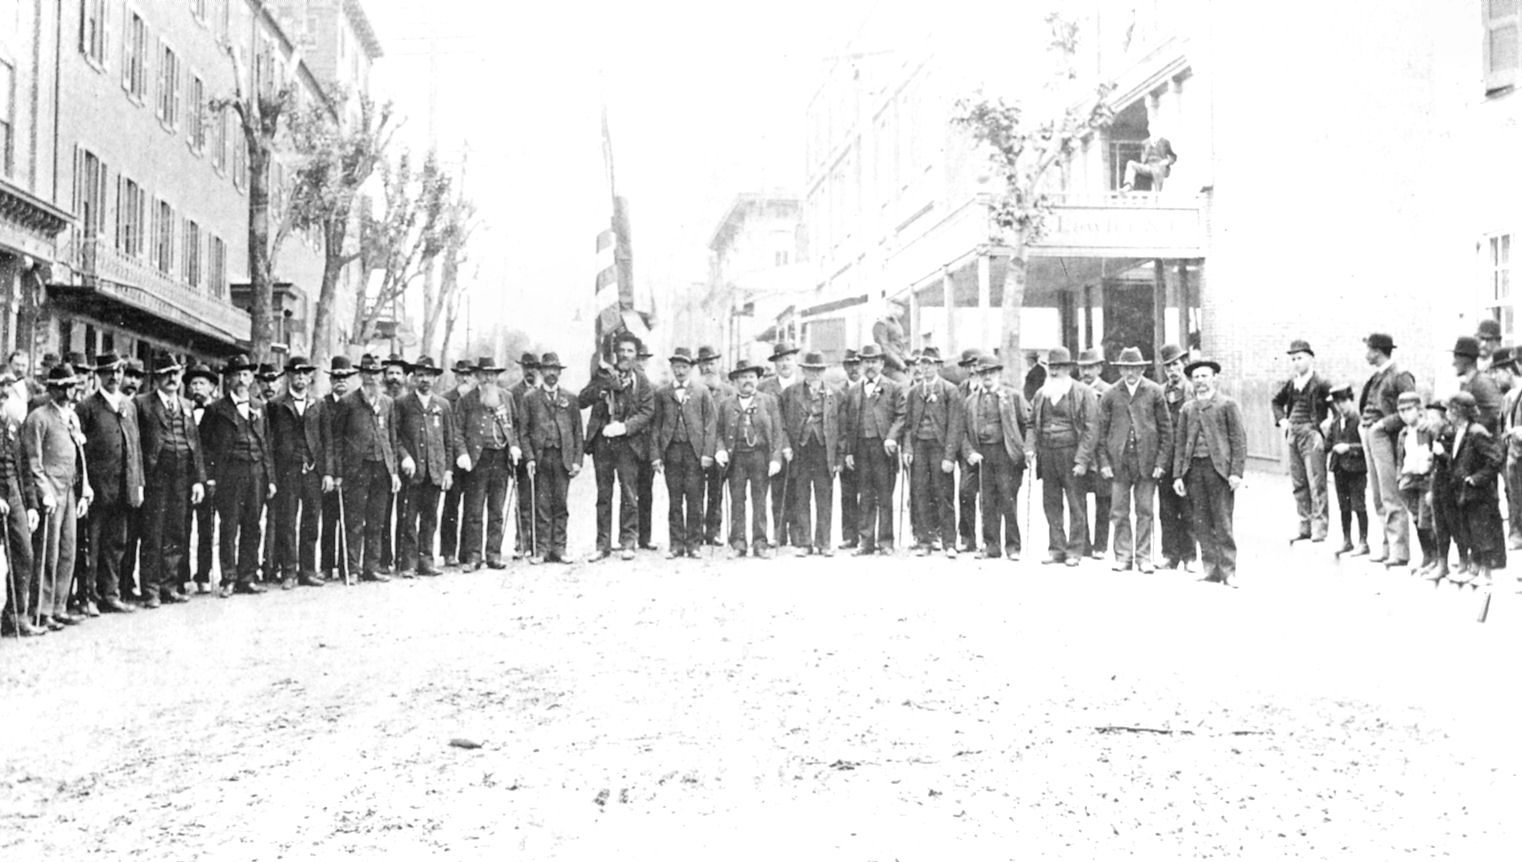 Surviving members of the 47th Pennsylvania Infantry at their annual  reunion, 1887.